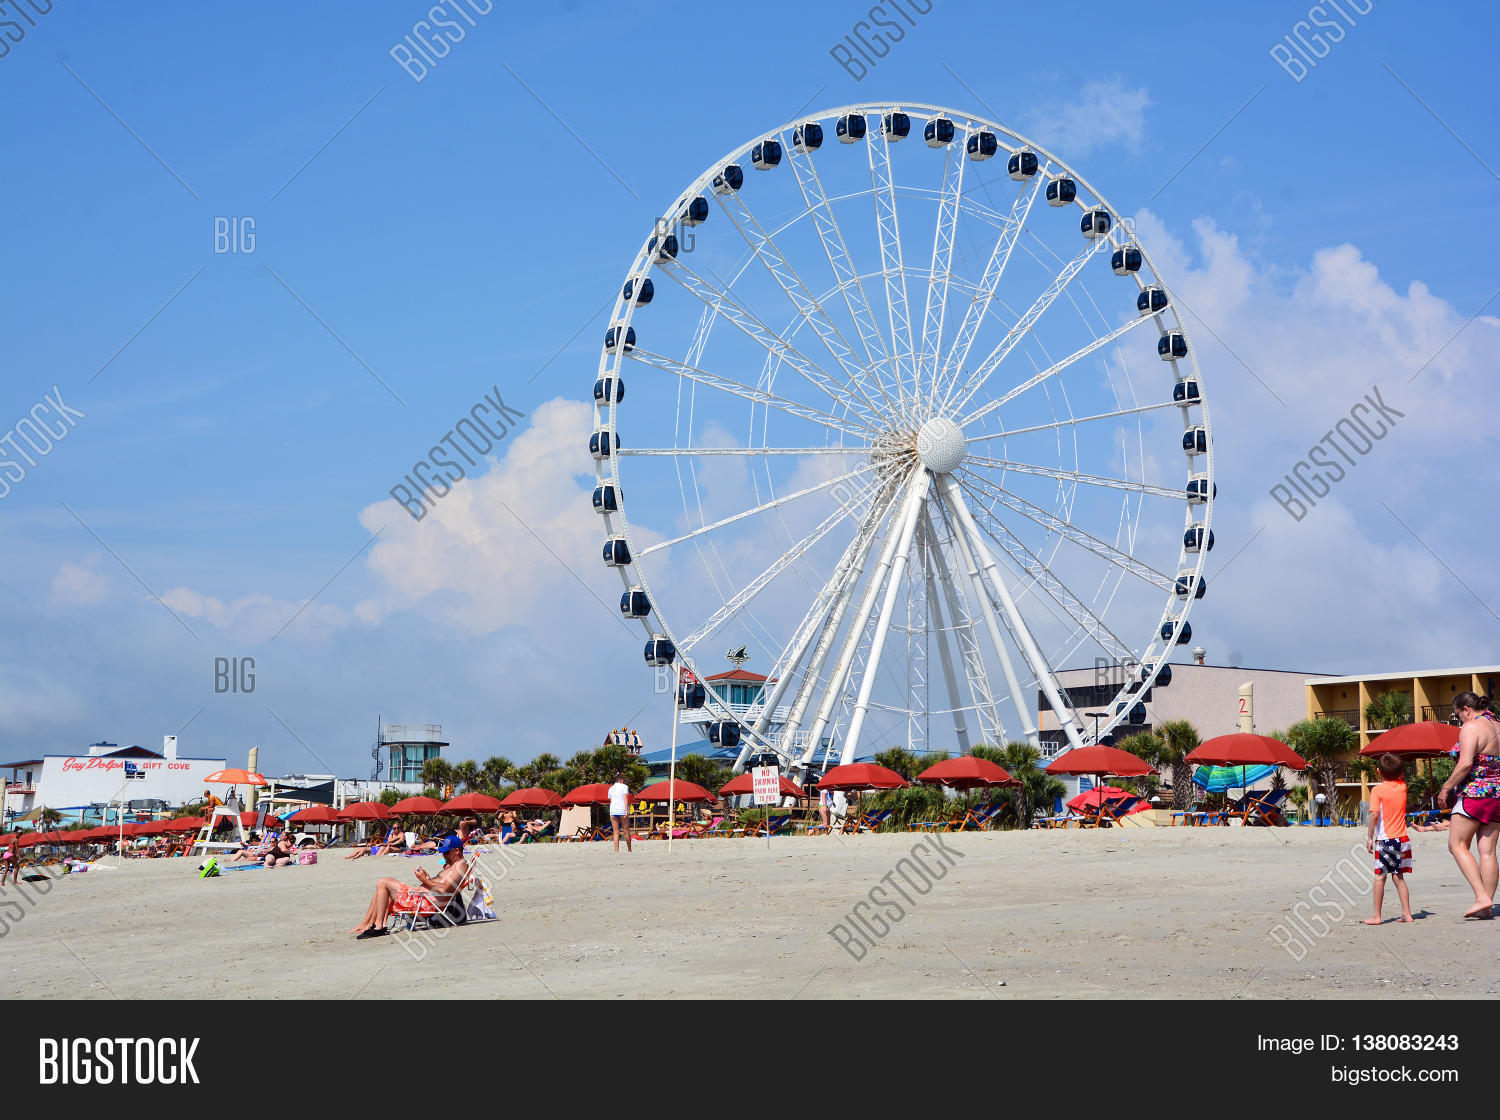 Myrtle Beach South Image Photo Free Trial Bigstock